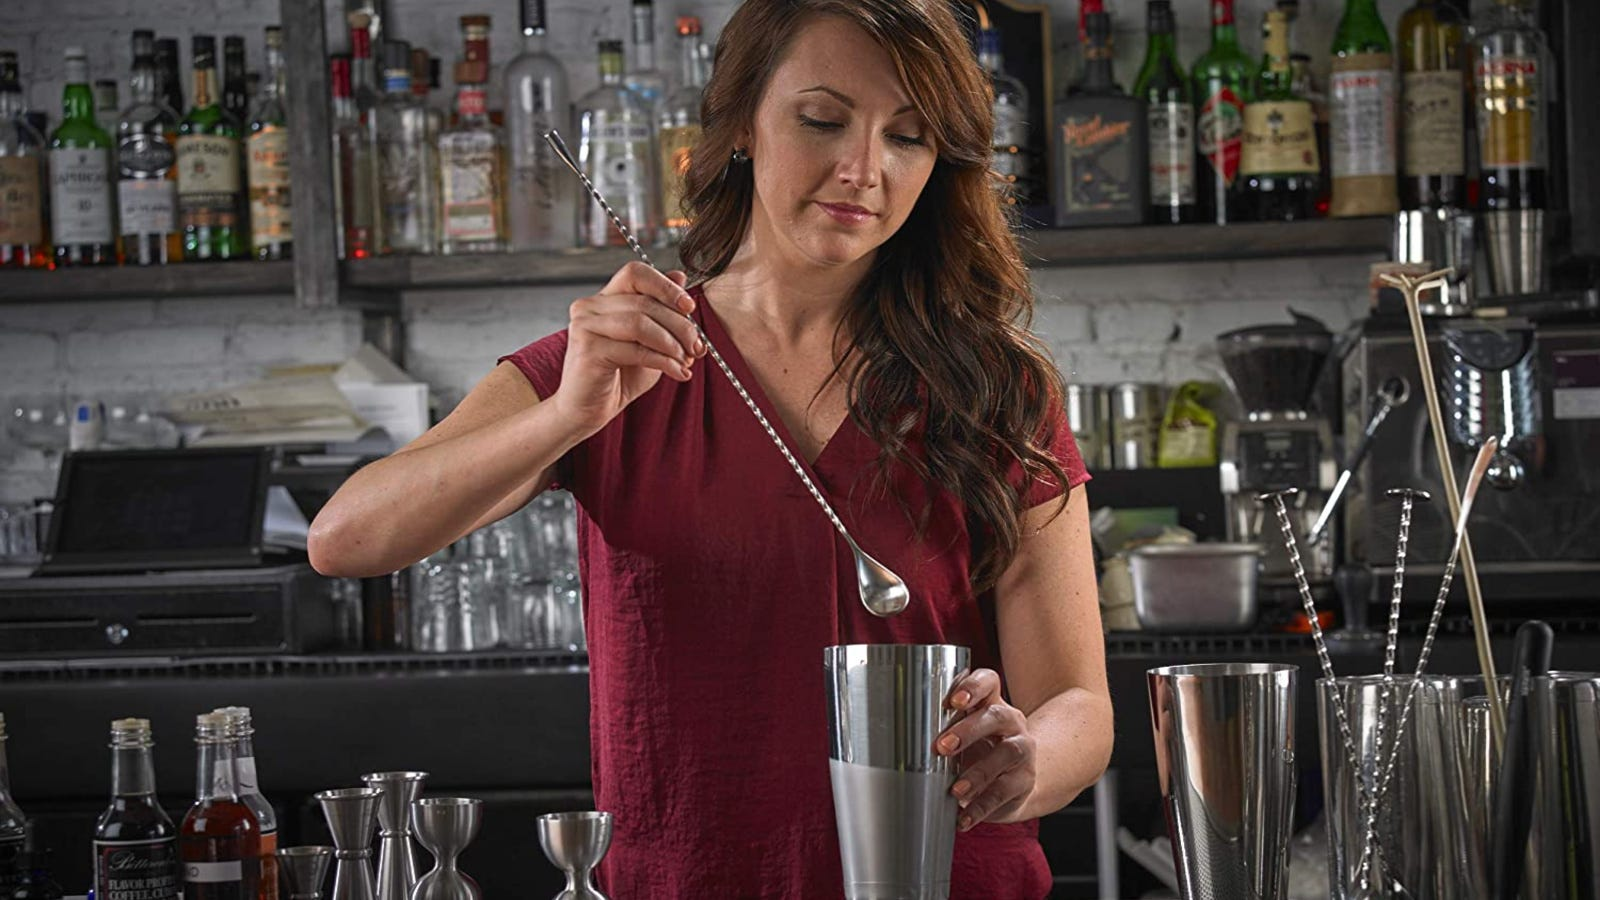 A bartender about to put the bar spoon in a cocktail shaker.